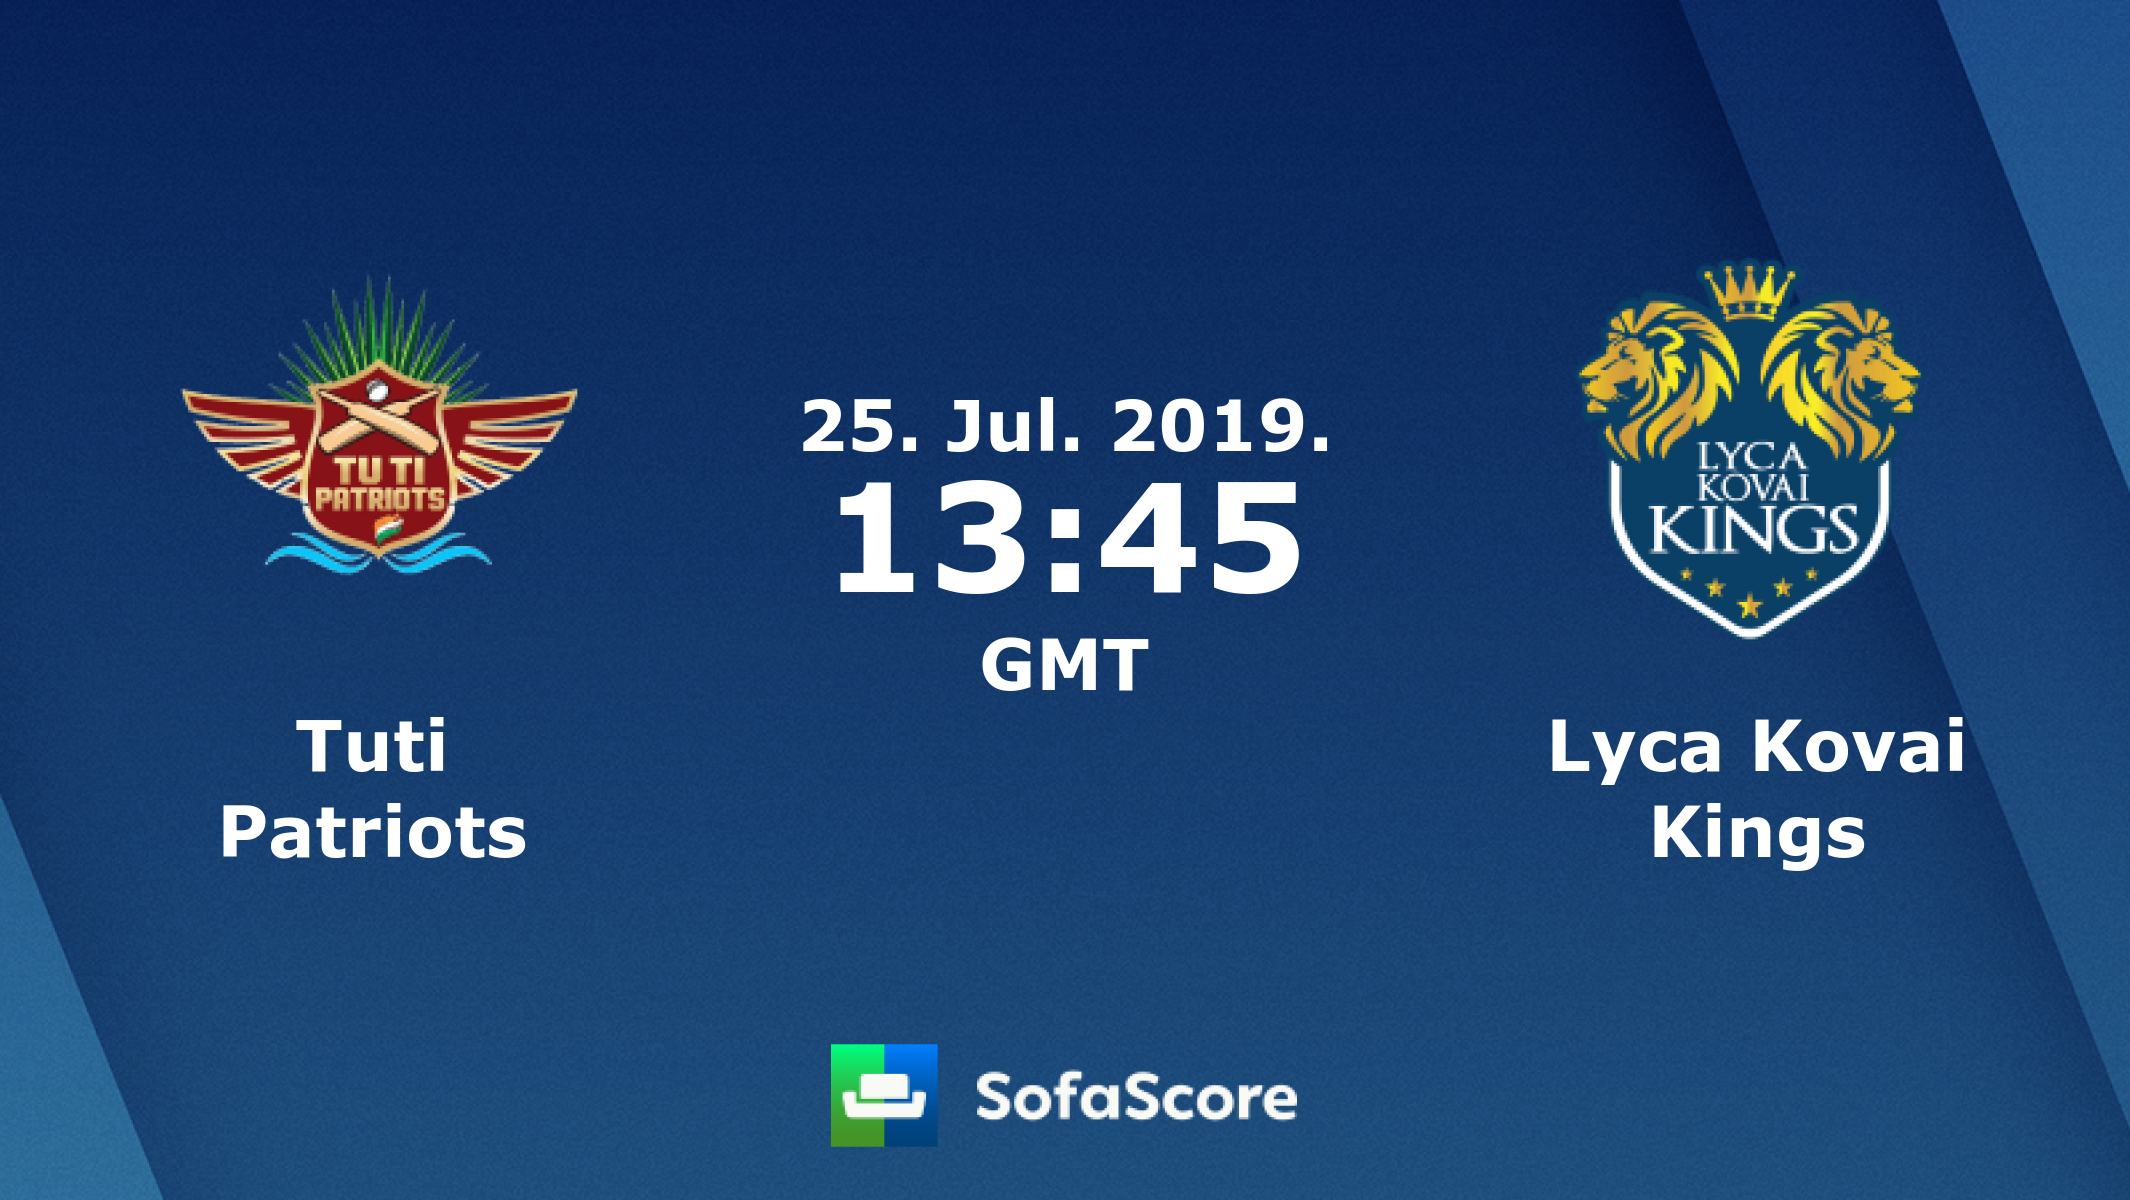 Tuti Patriots Lyca Kovai Kings live score, video stream and H2H